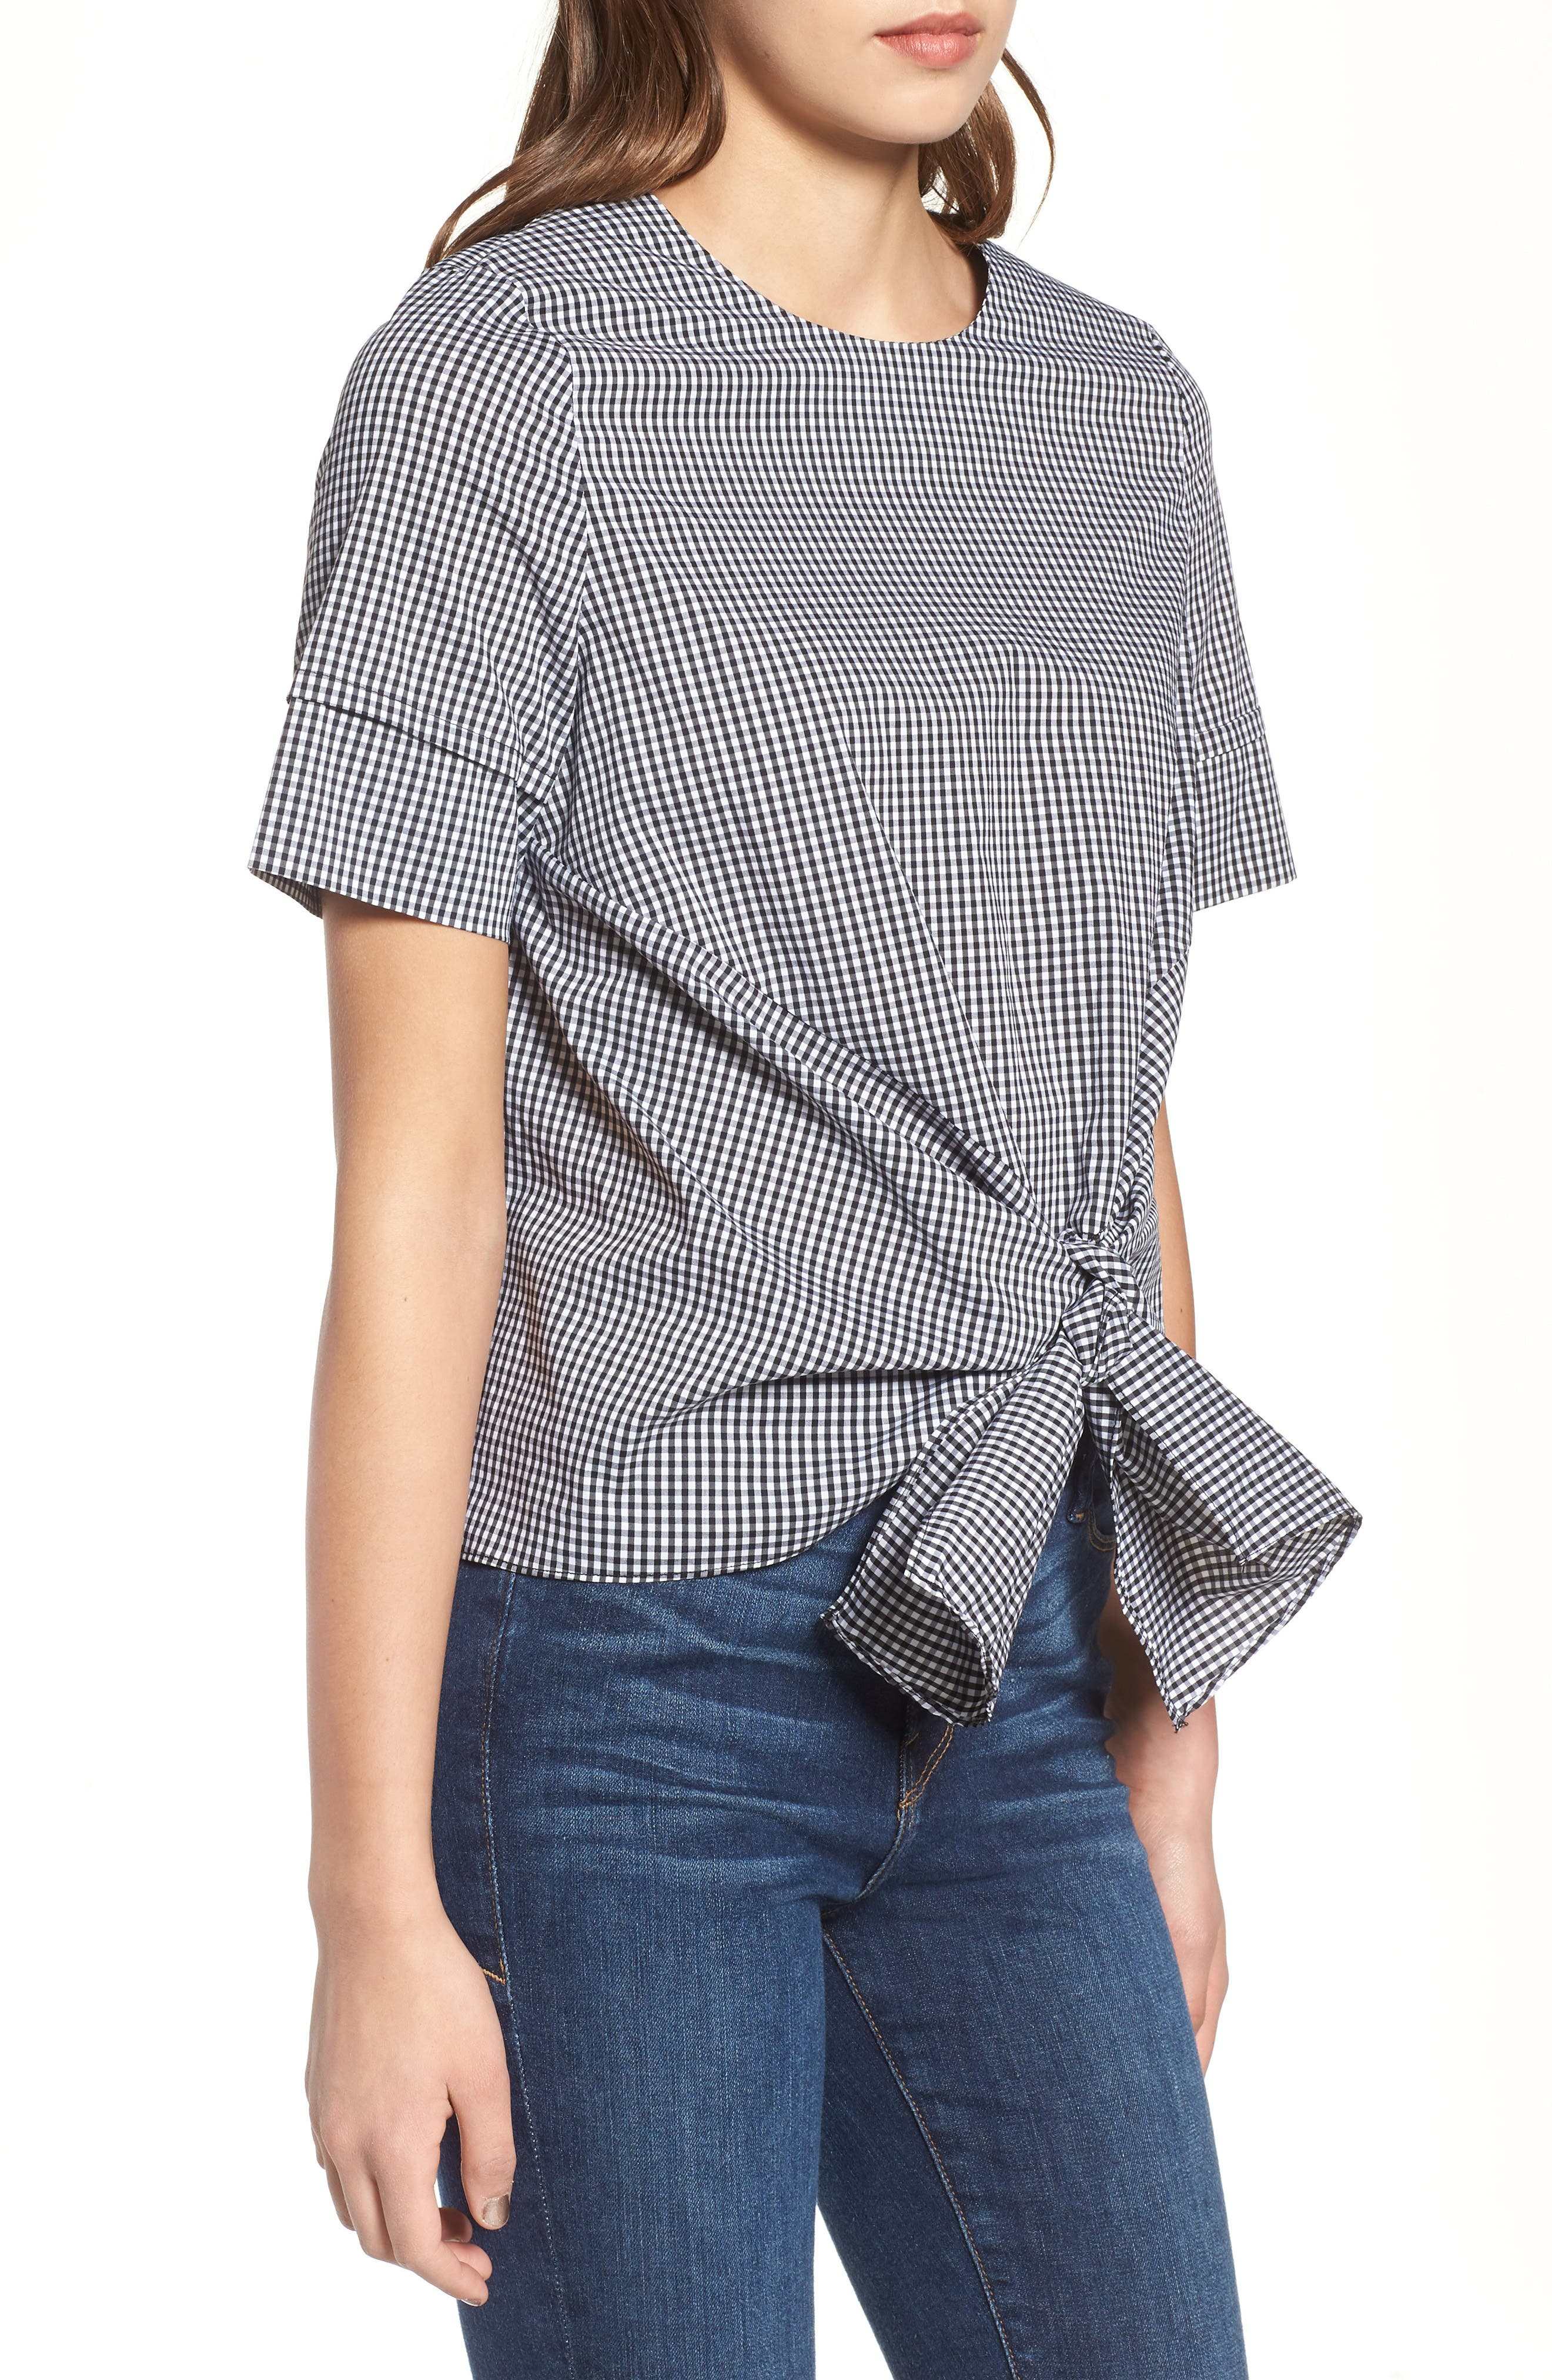 Bishop + Young Gingham Tie Front Blouse,                             Alternate thumbnail 3, color,                             Gingham